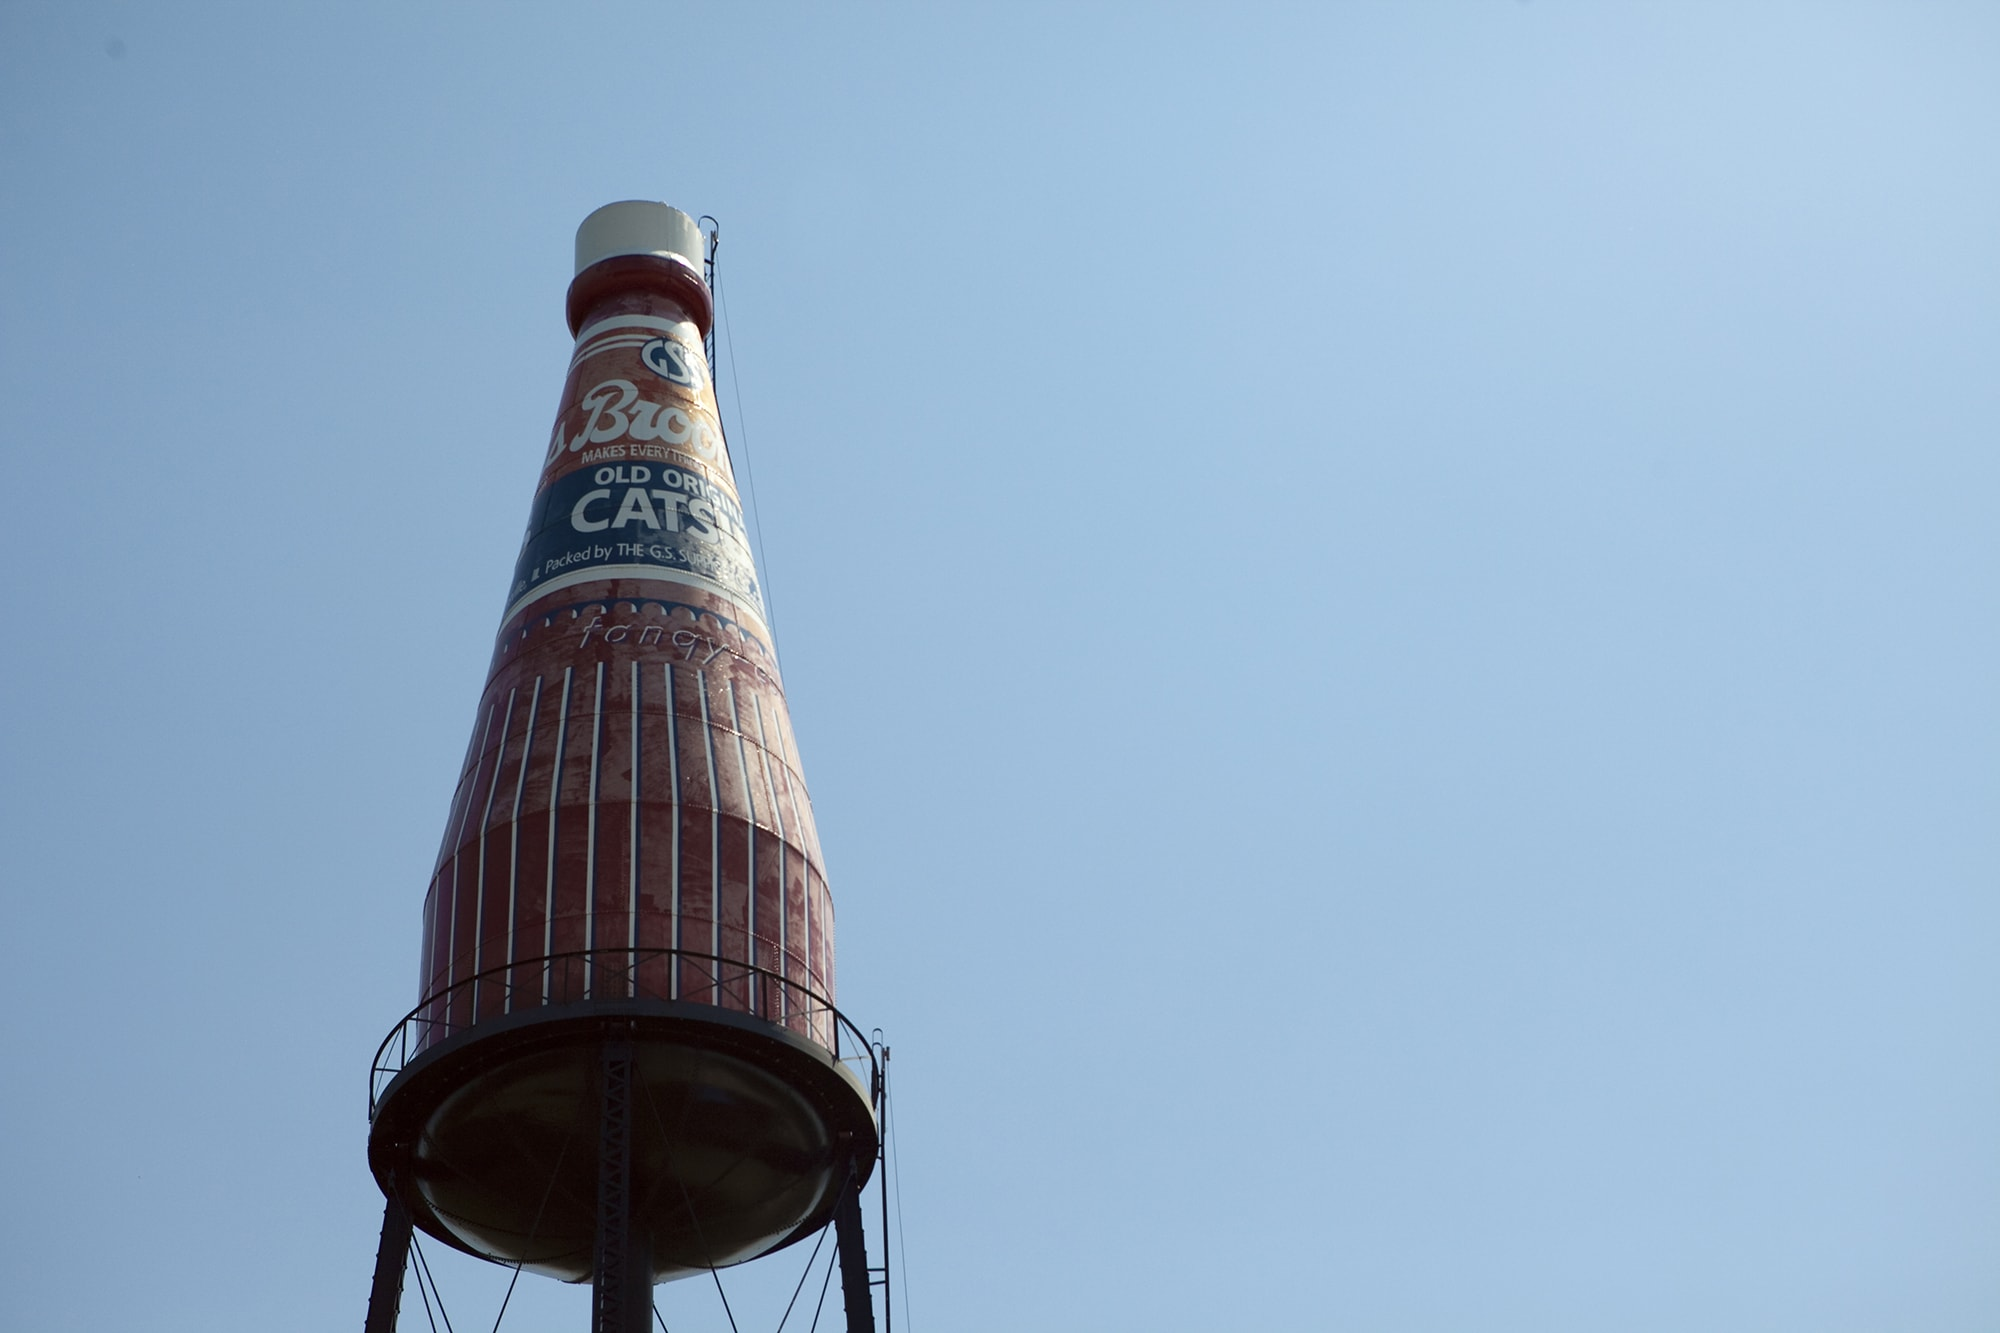 World's Largest Catsup bottle on a Missouri road trip.